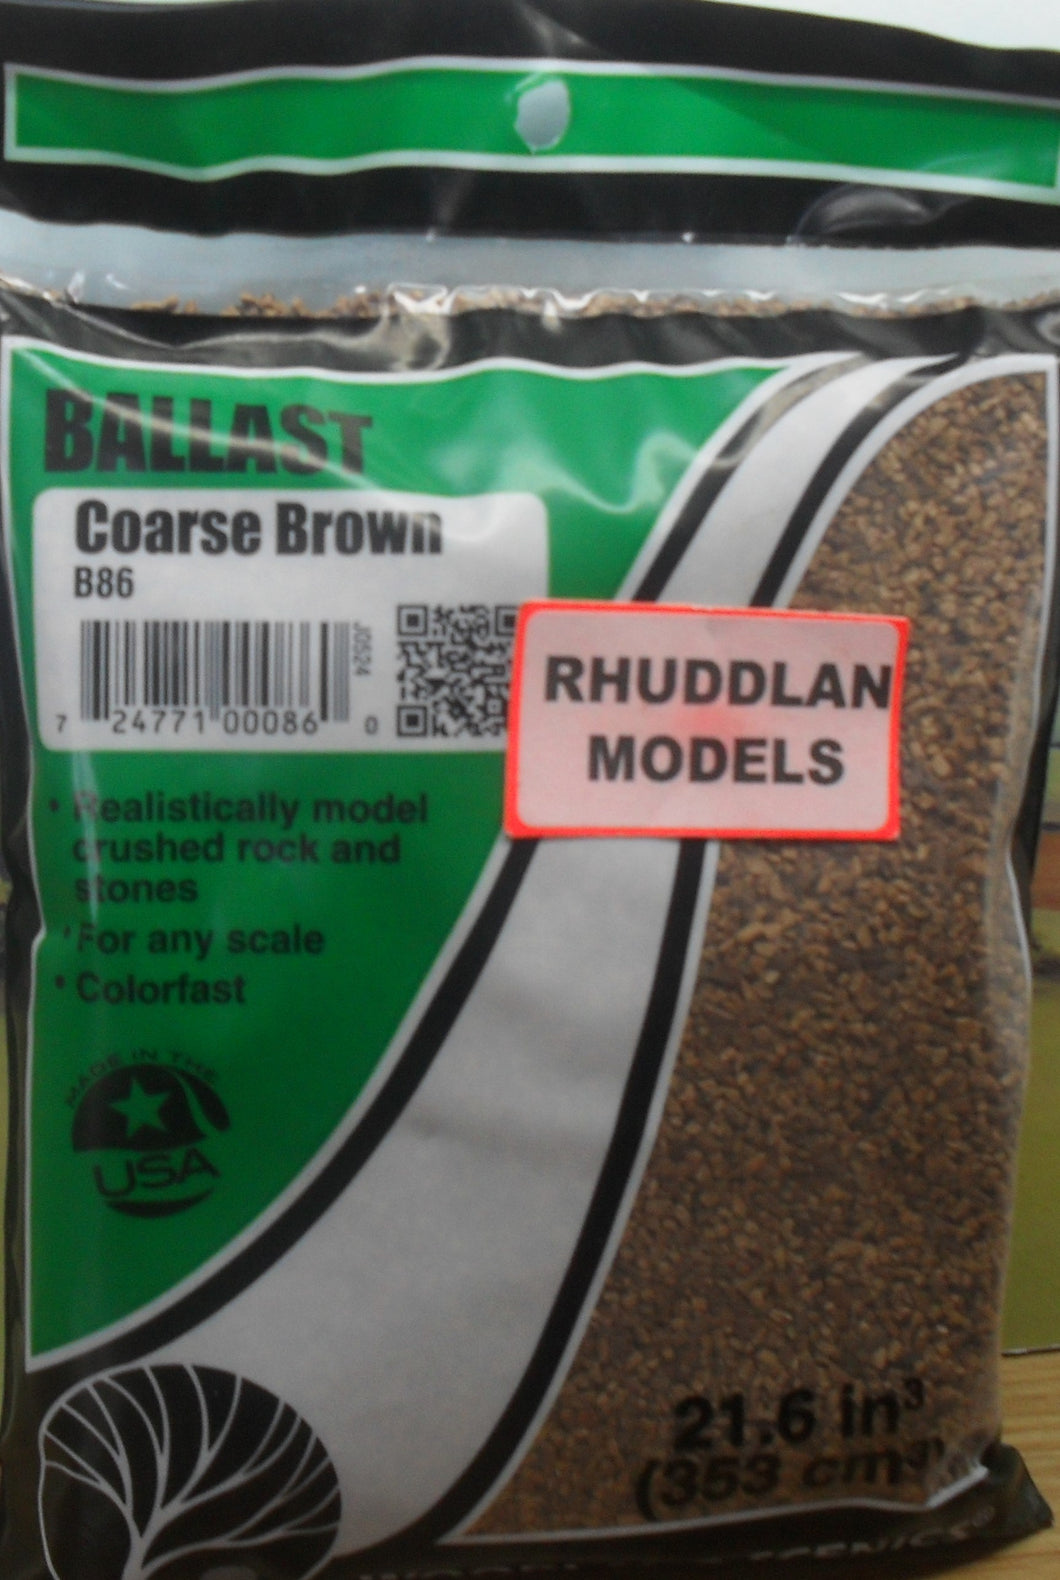 WOODLANDS SCENICS B86 BALLAST COARSE BROWN - (PRICE INCLUDES DELIVERY)